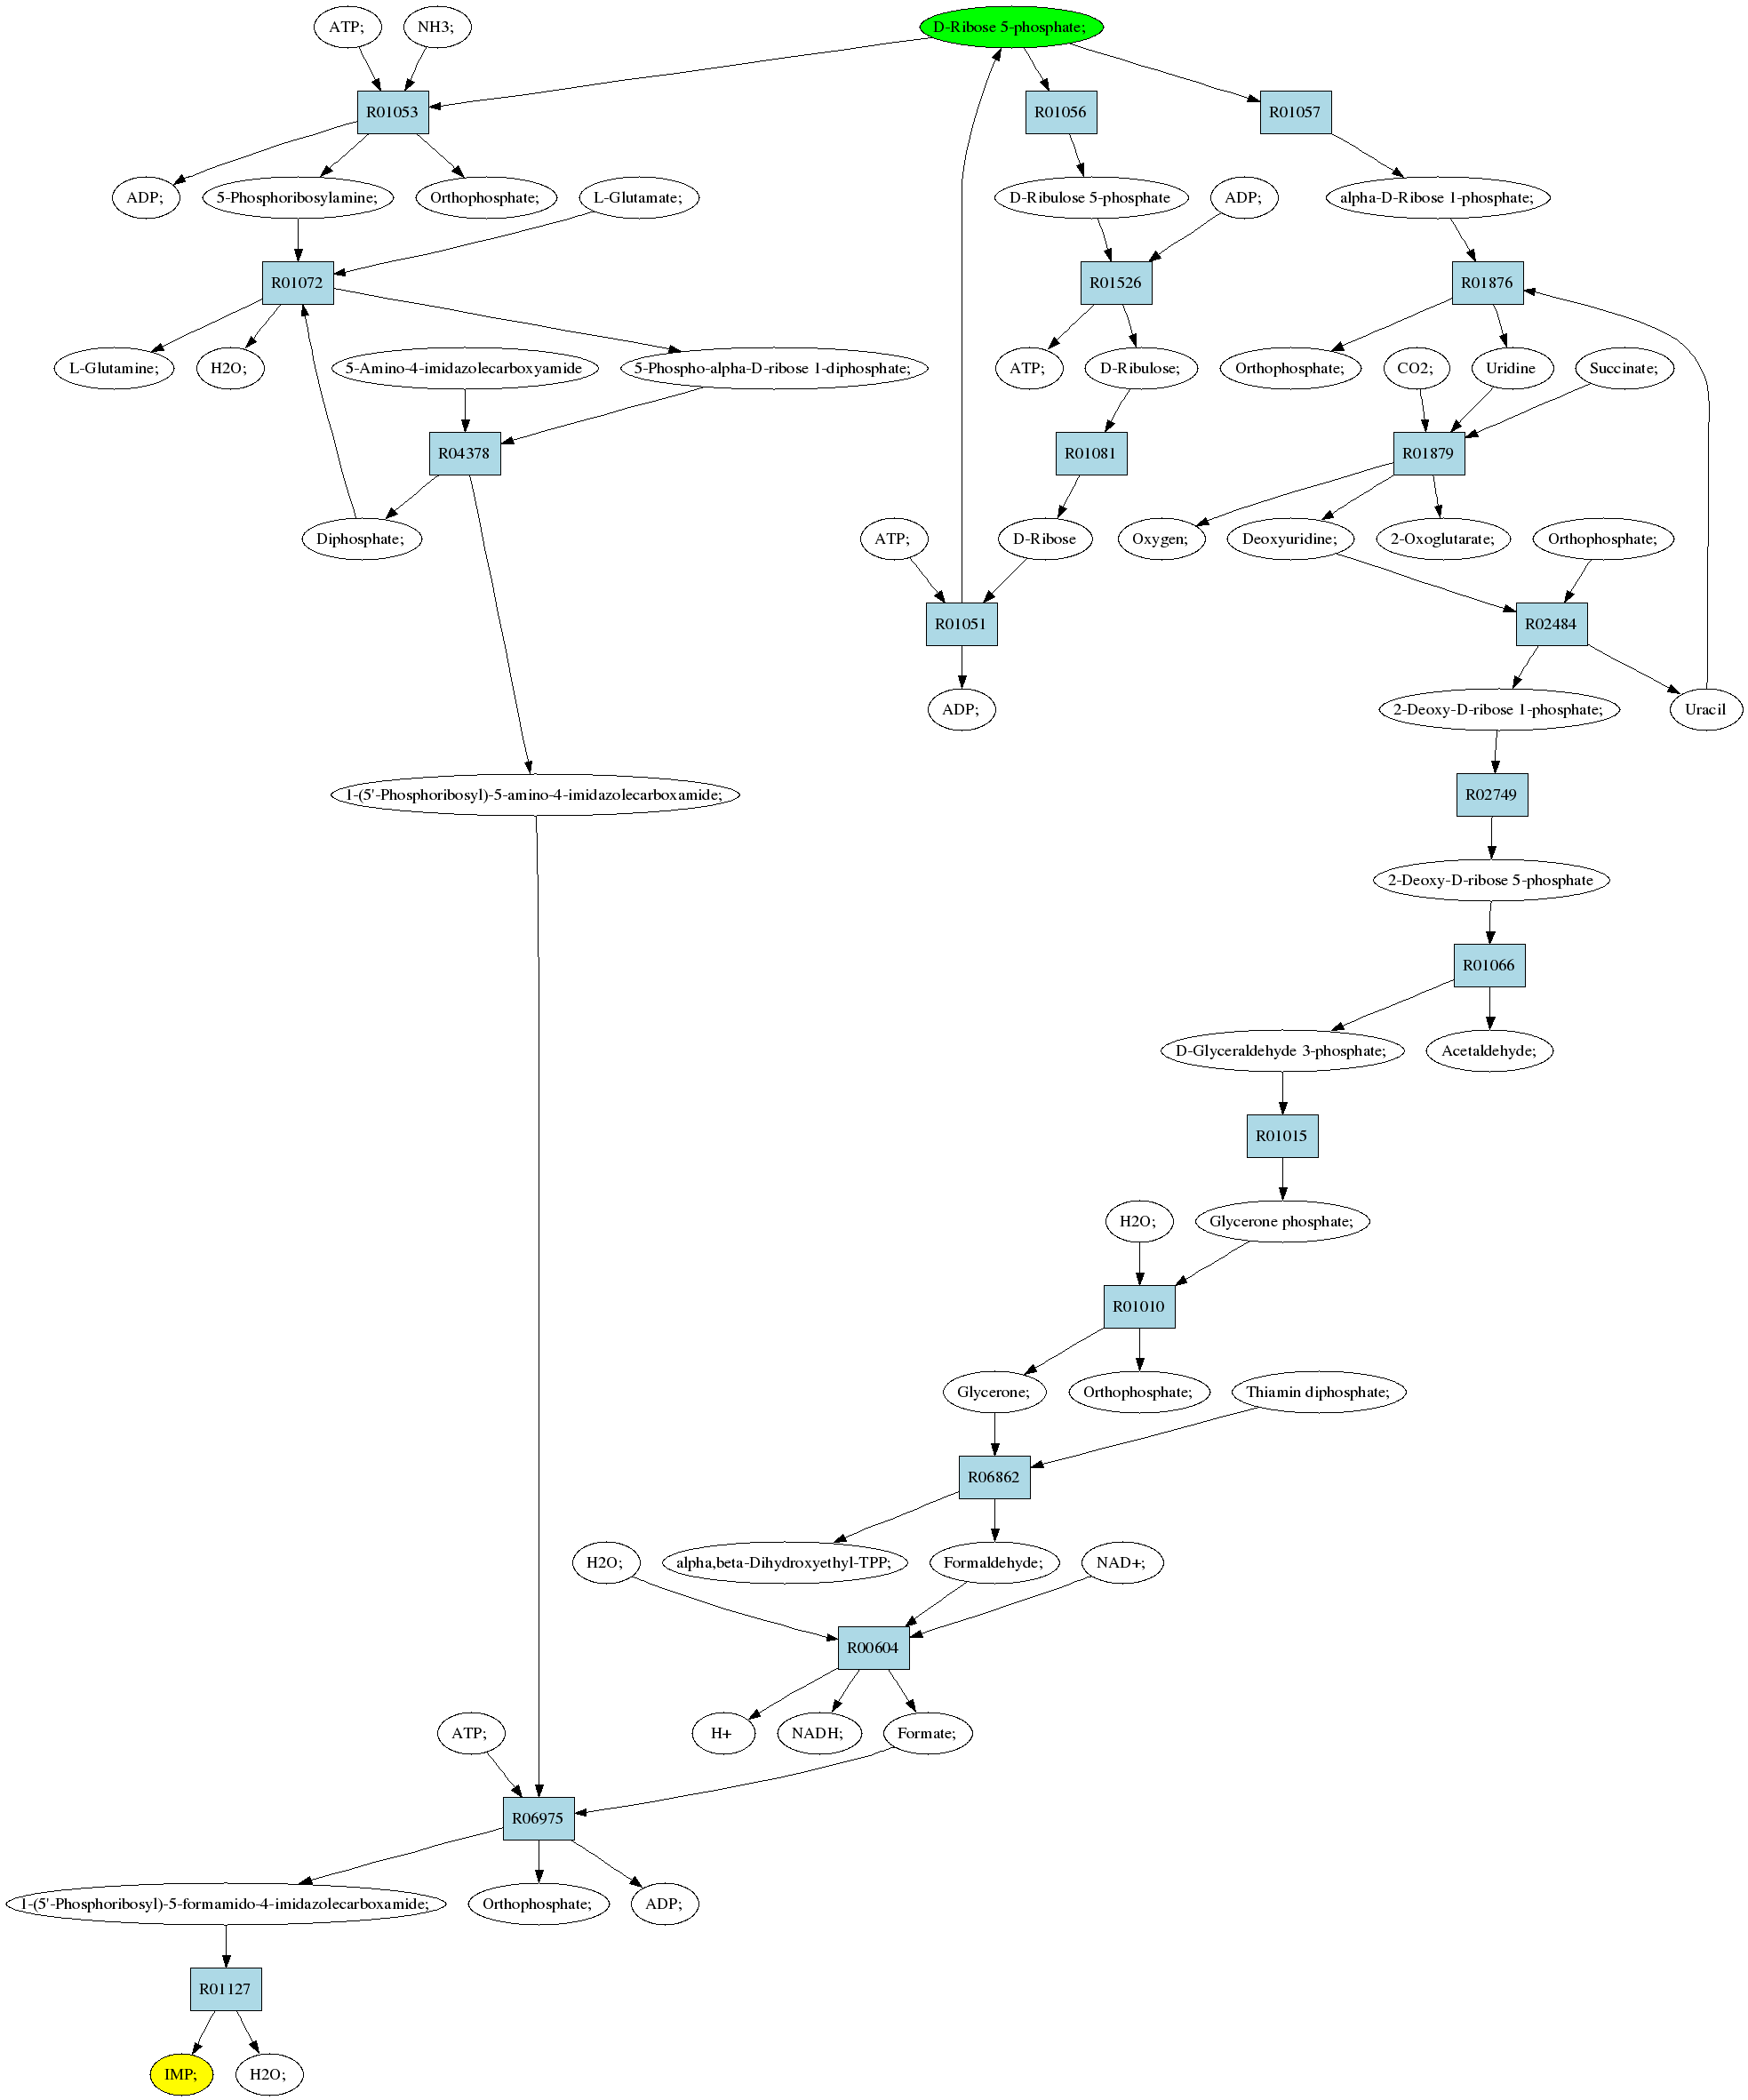 diagram of ribose deoxy pathway 539 from c00117 to c00130  pathway 539 from c00117 to c00130